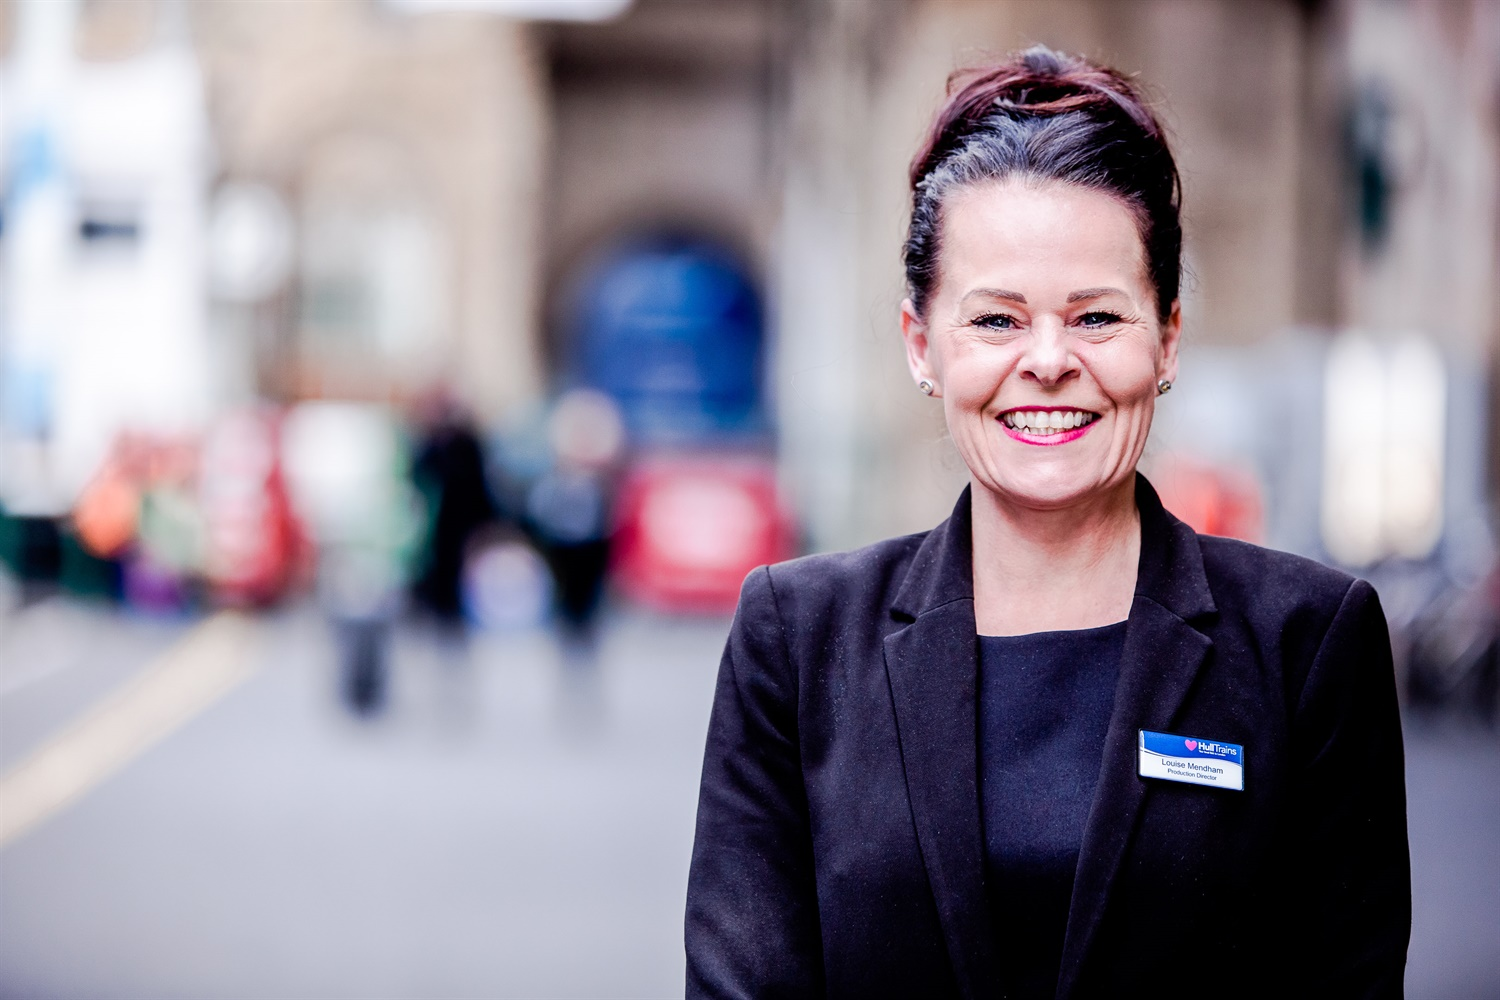 Hull Trains' Louise Mendham appointed as director after 14 years of delivery